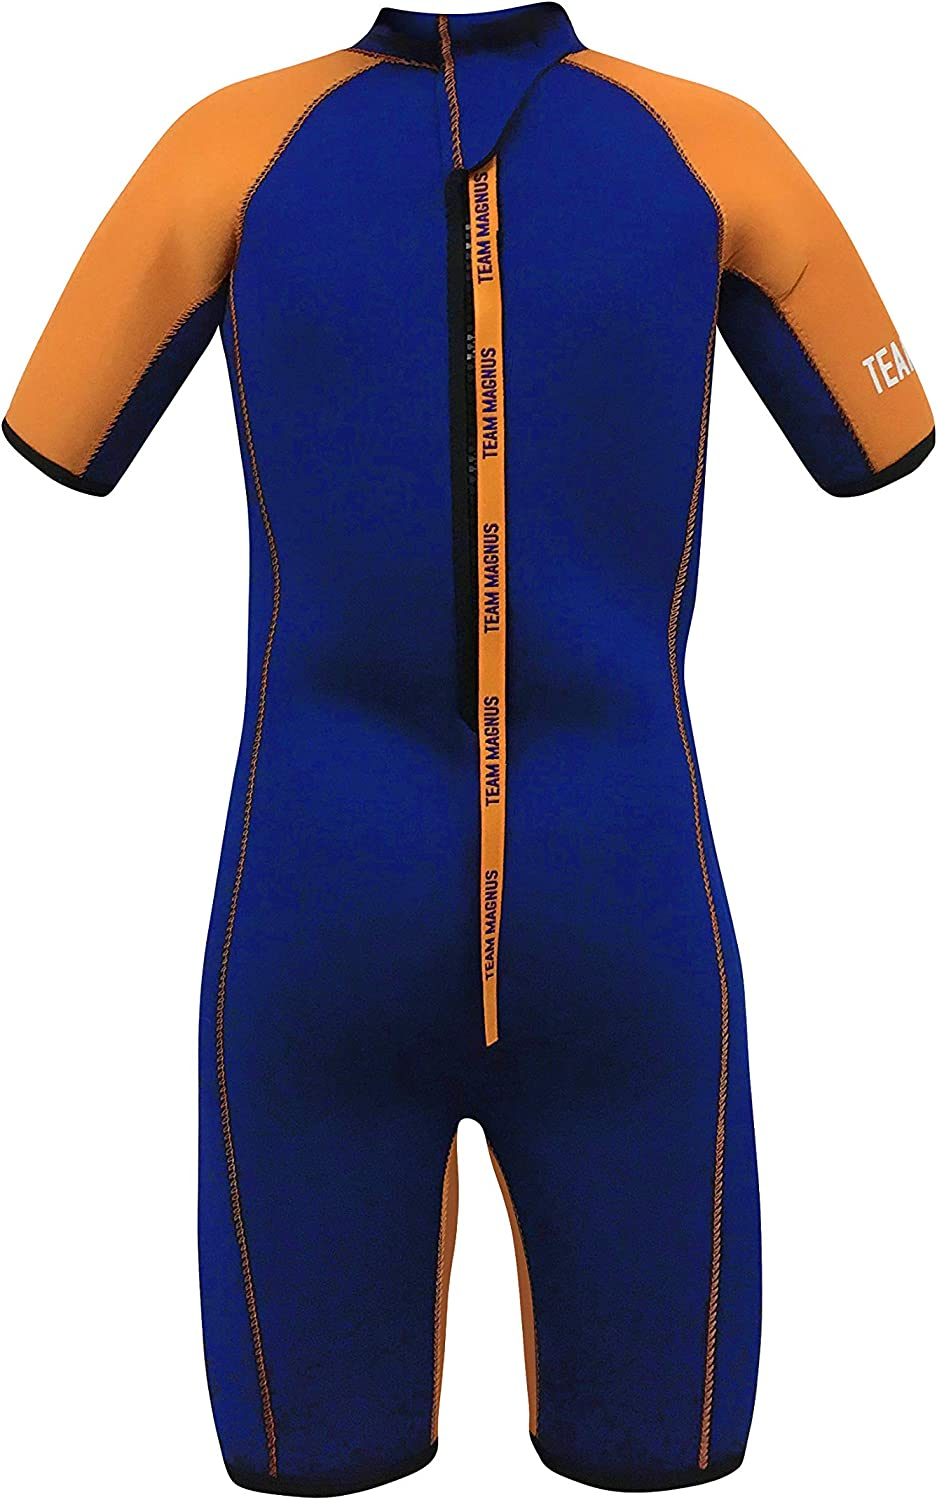 Extremely Insulating and Elastic for Kids Age 3-14 TEAM MAGNUS Kids Wetsuit Unique 5mm Neoprene Shorty